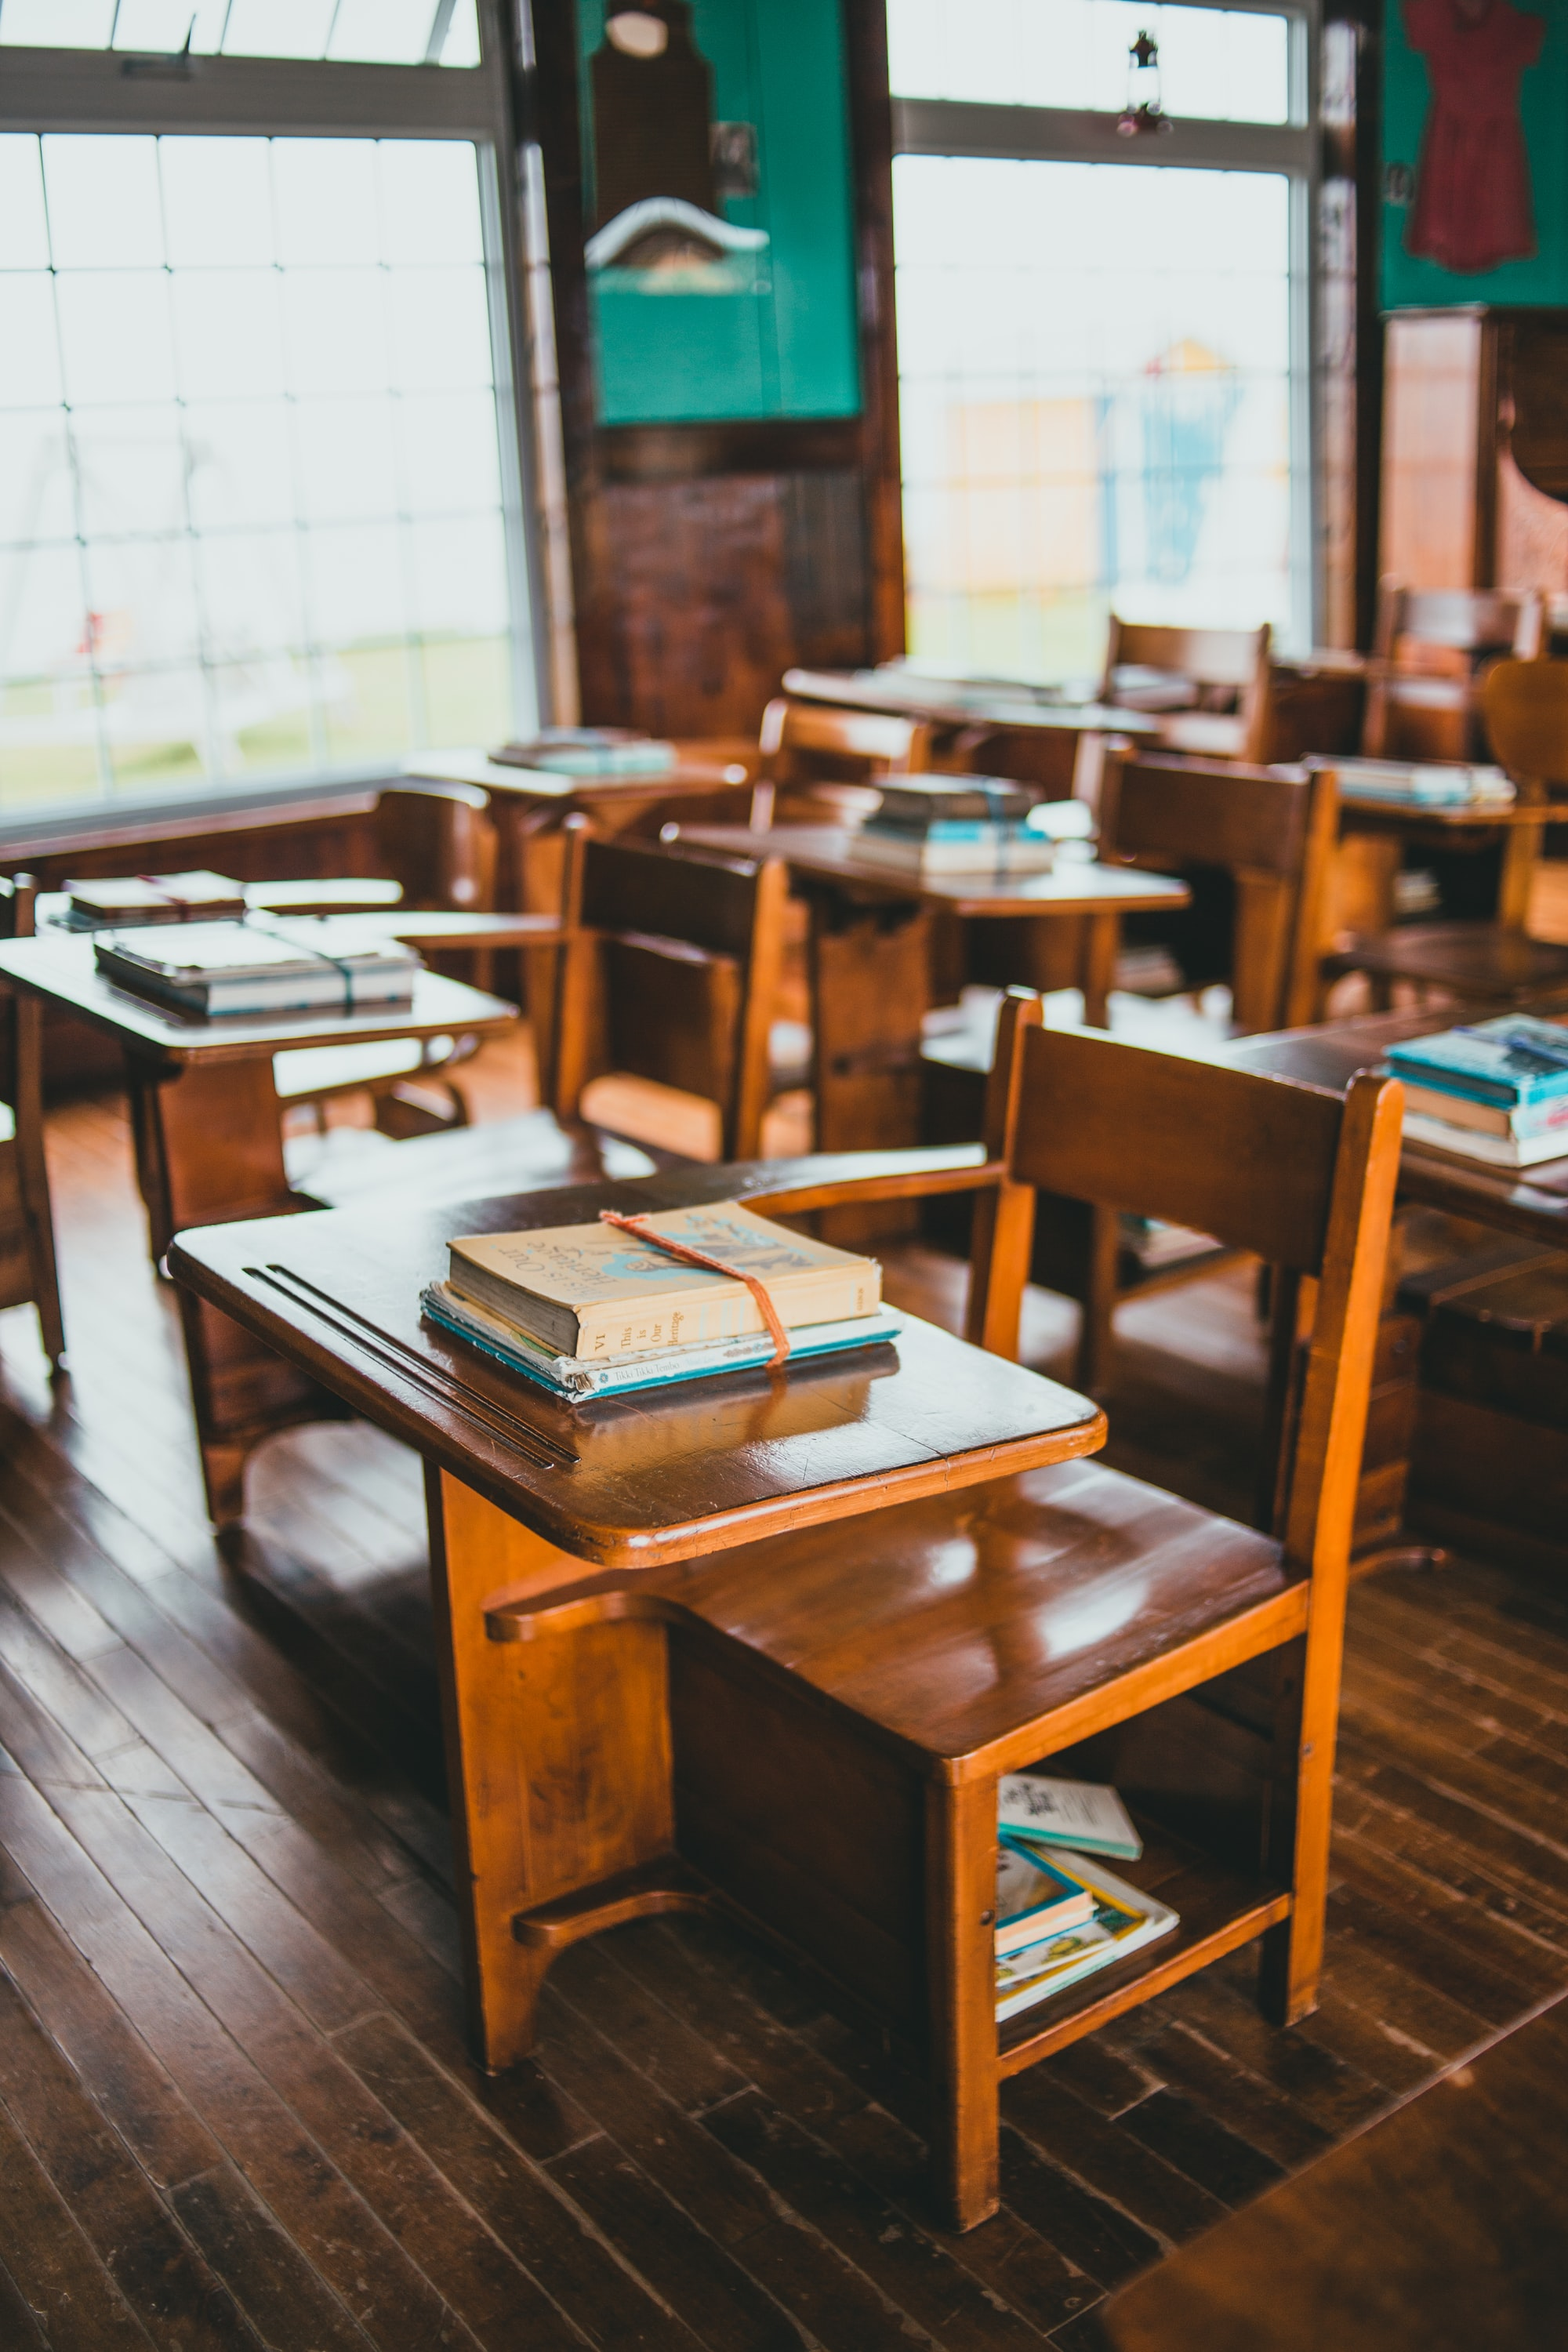 Getting the most out of your hybrid classroom with digital learning management